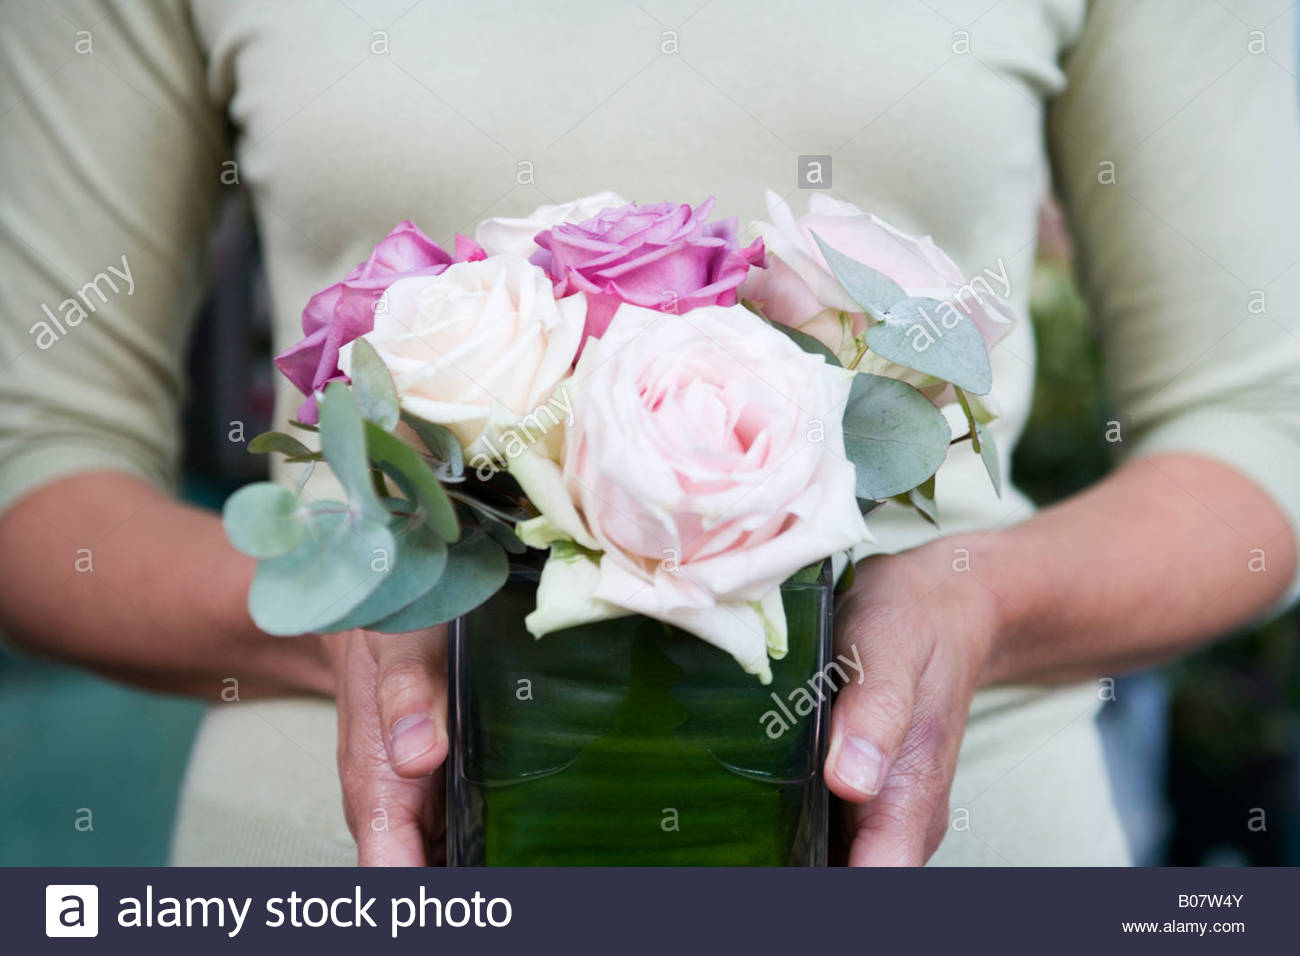 Woman holding a square vase of pink roses - Stock Image